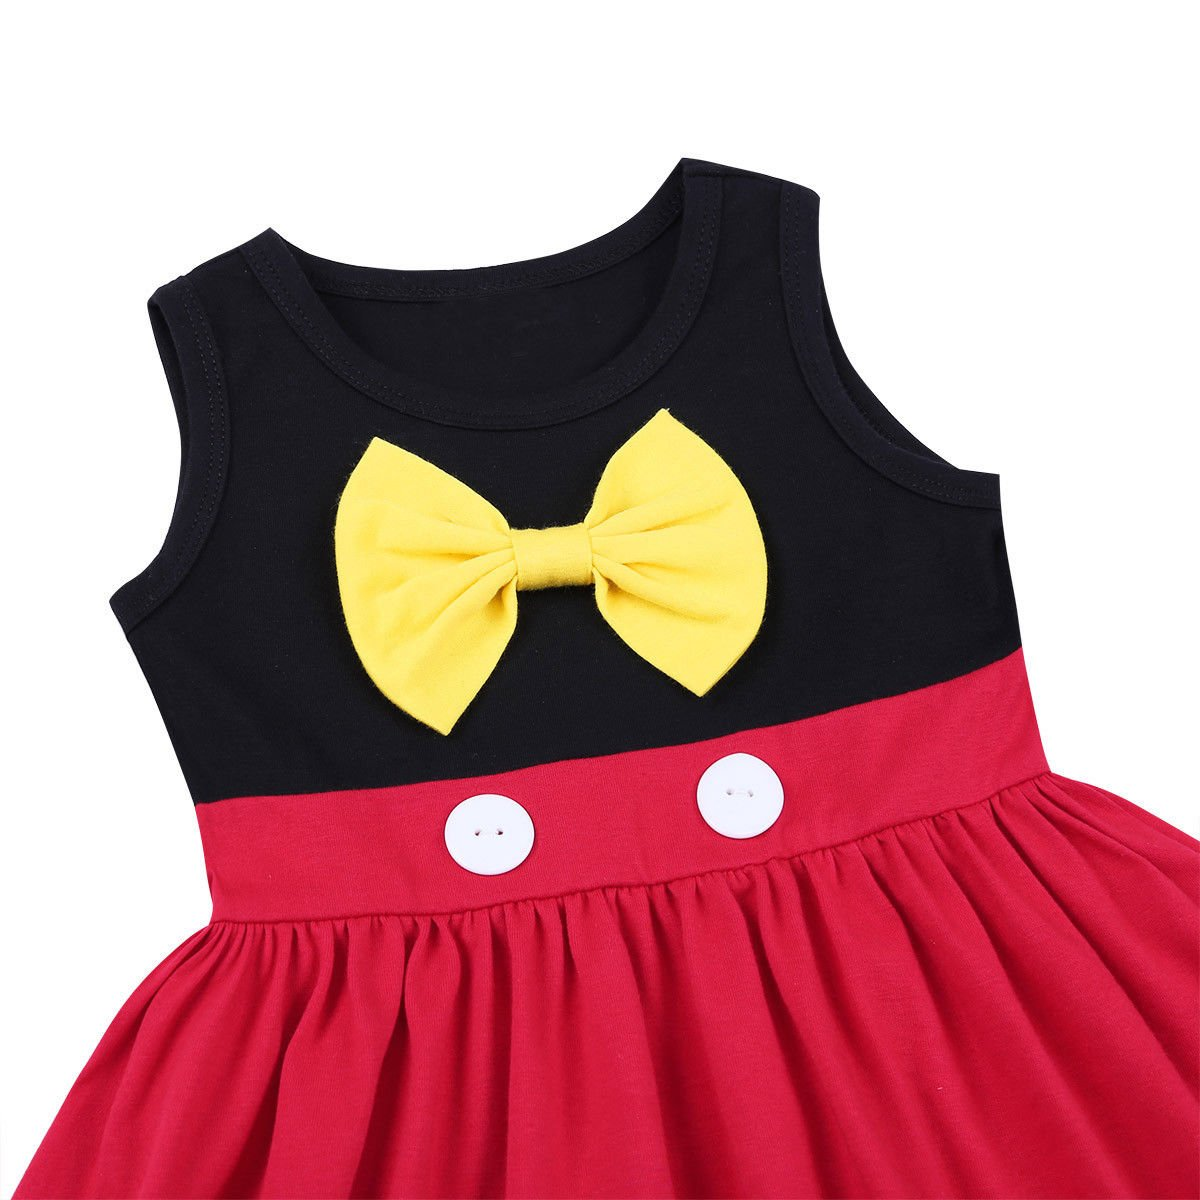 Baby Girl Princess Costume Summer Dresses Minnie Cartoon Cosplay Birthday Party Outfits T Shirt Skirt Clothes Set 18-24 Months by IBTOM CASTLE (Image #4)